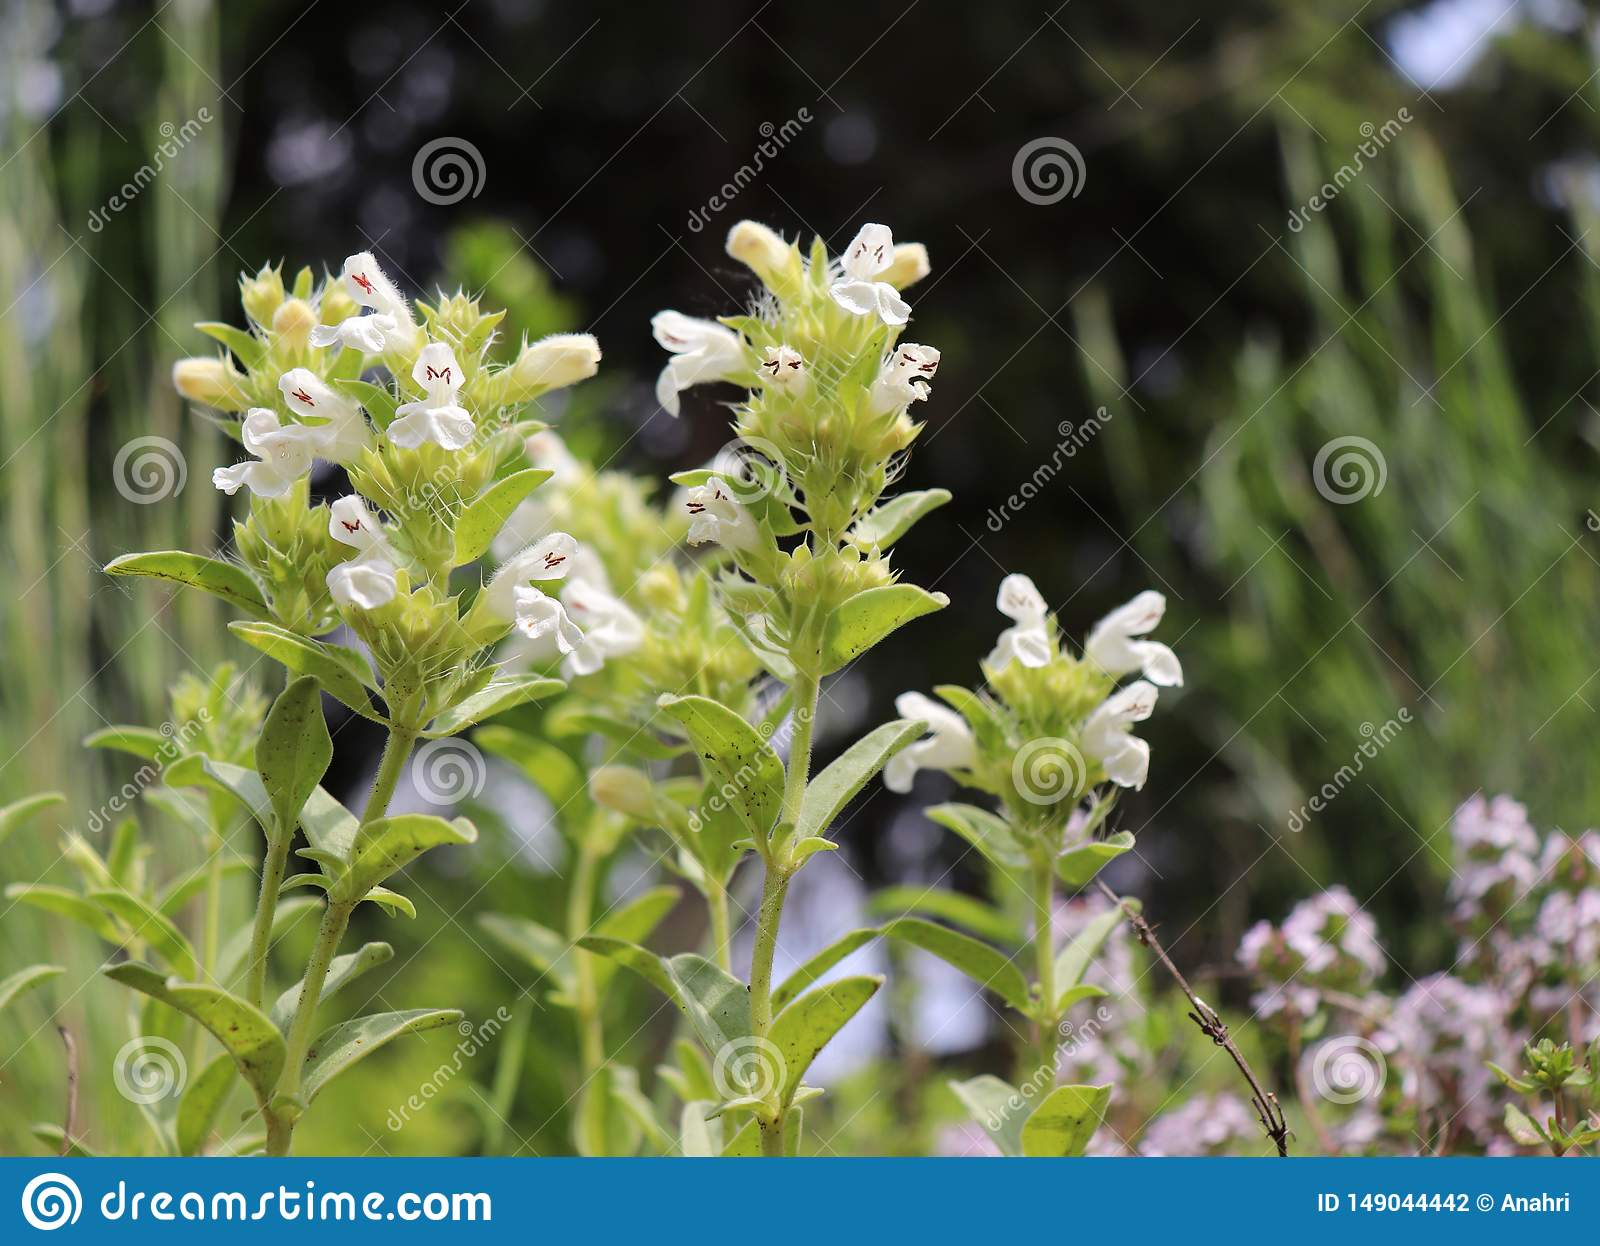 Hyssop-leaved mountain ironwort Sideritis hyssopifolia is a perennial herb native to southwestern Europe mountains.